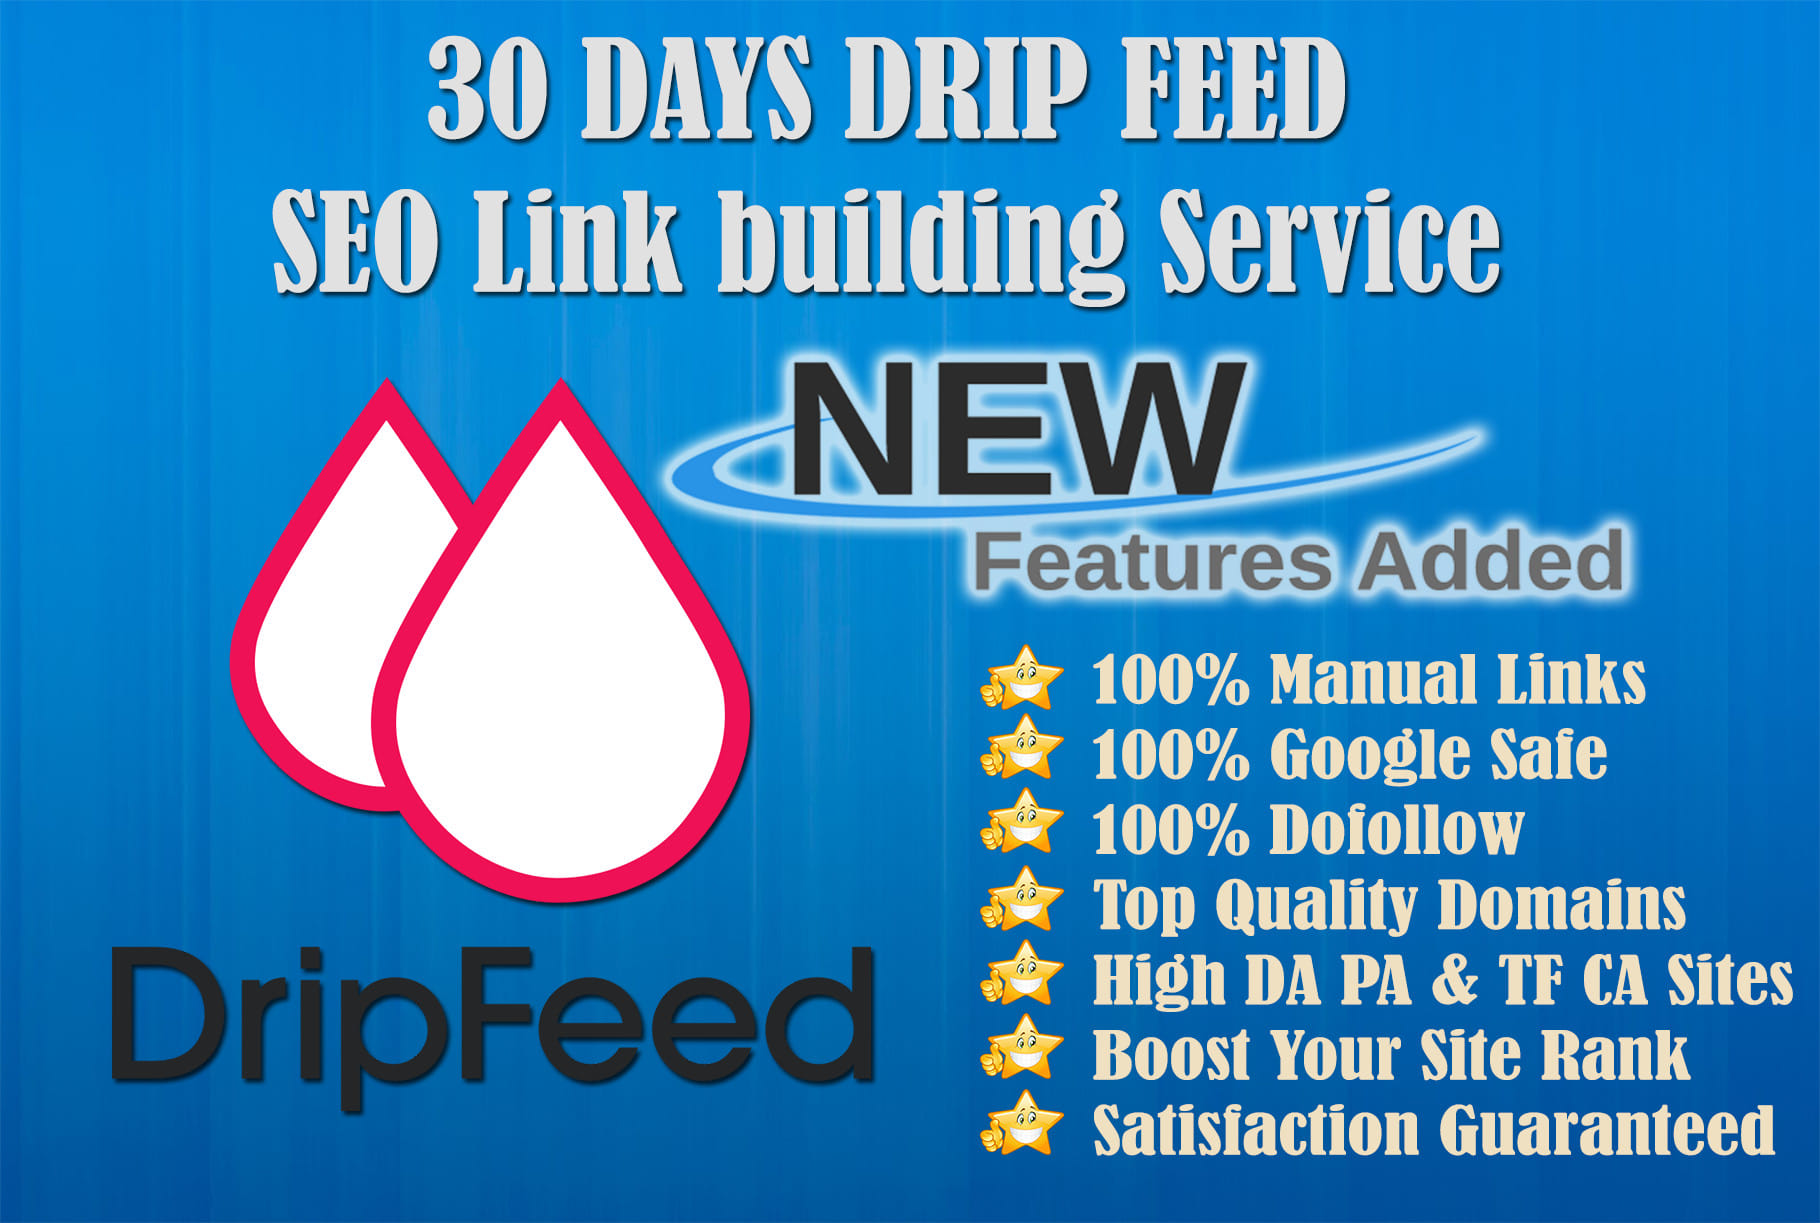 I will submit 30 days dripfeed seo link building service for daily update